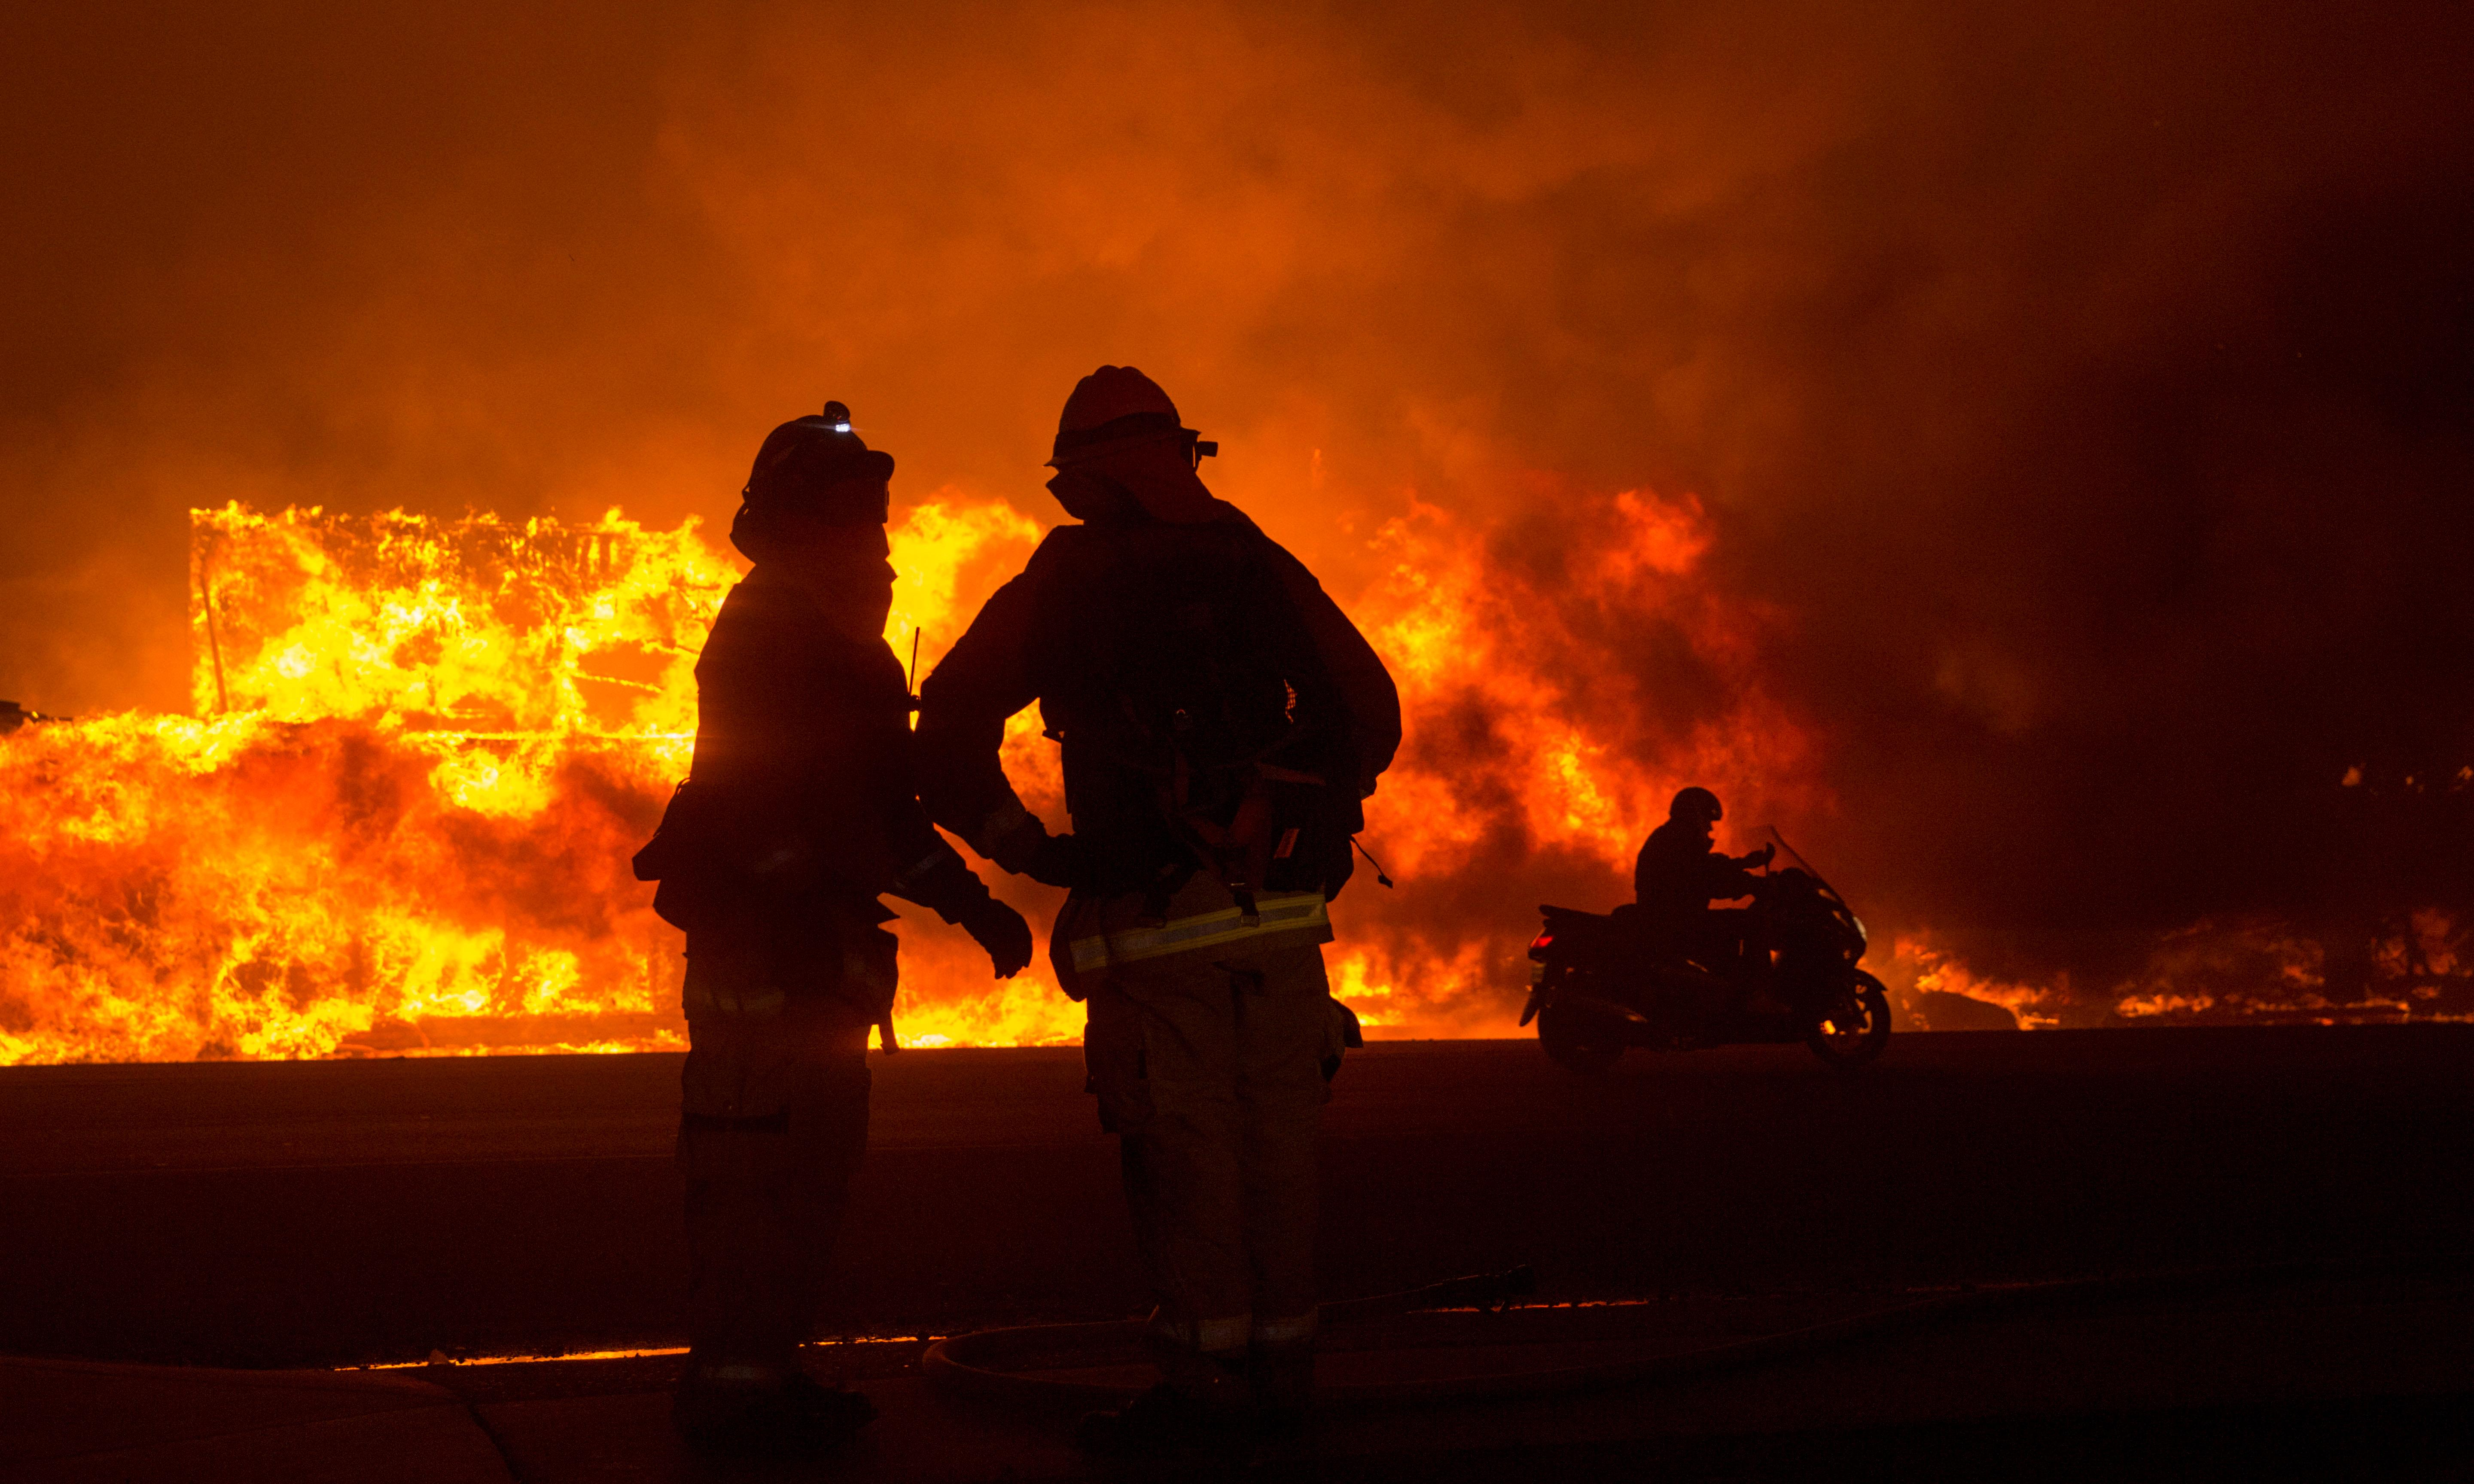 Surviving on beef jerky and one-hour naps: fighting a deadly California blaze